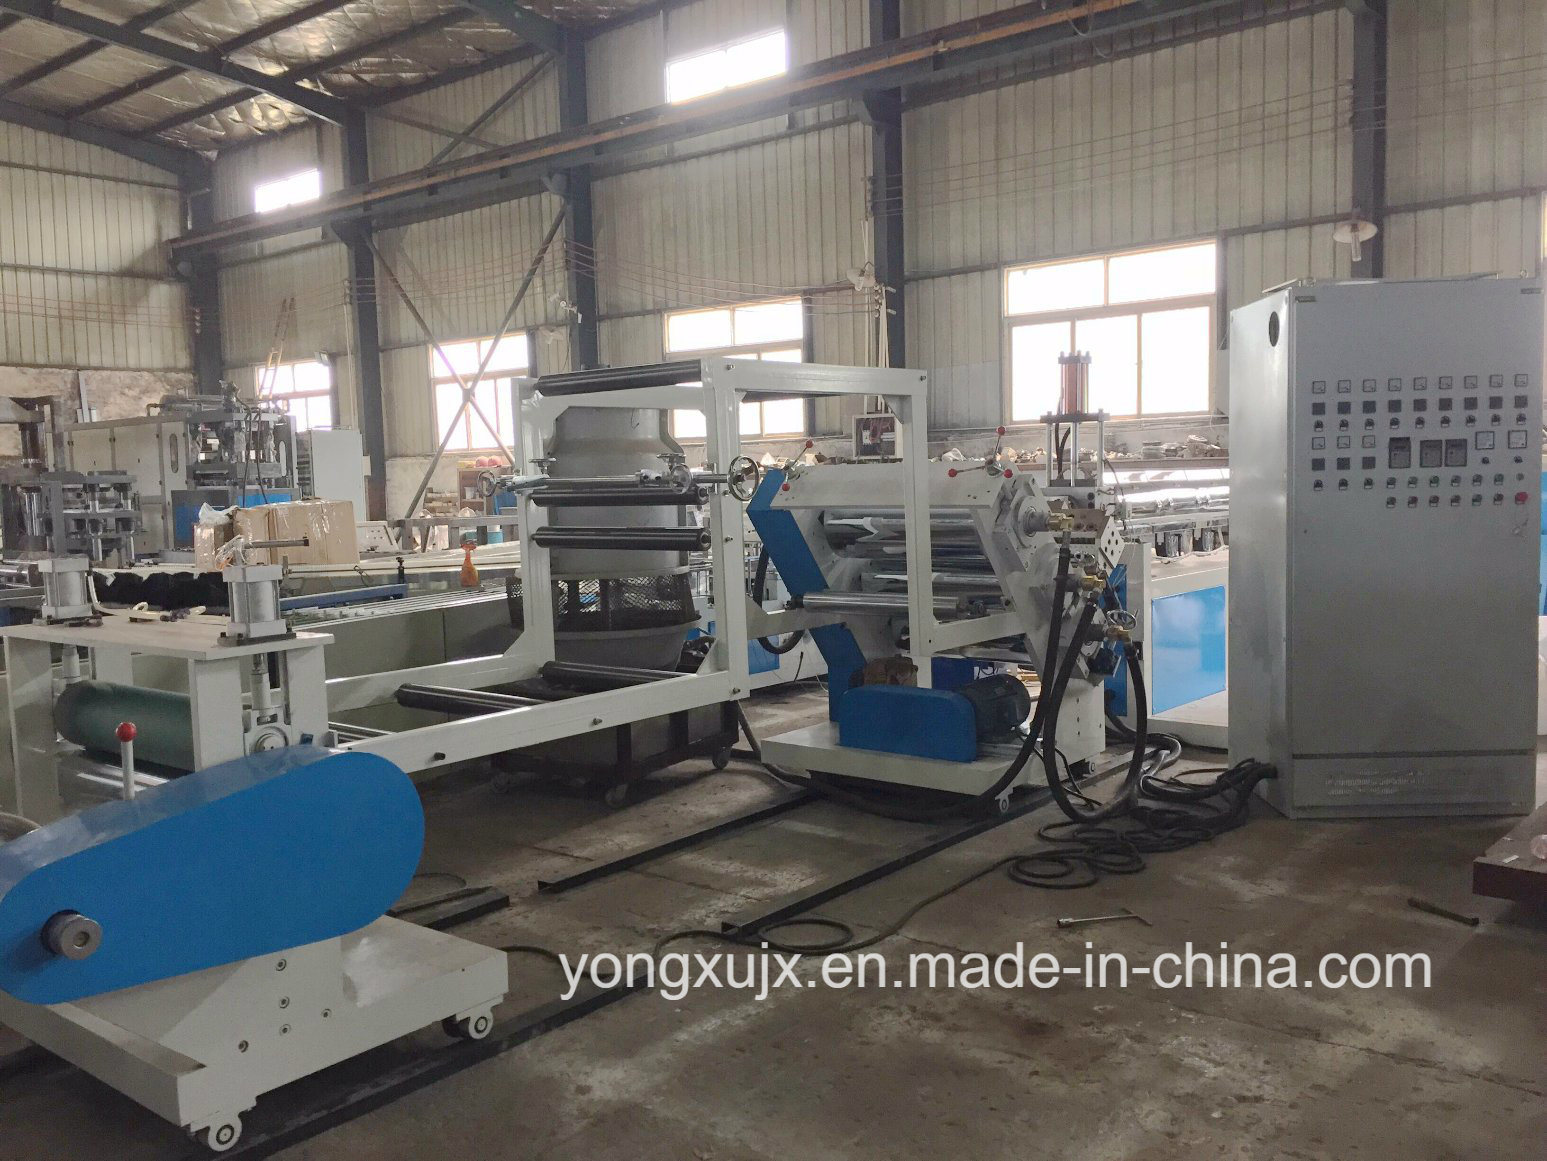 Single Screw One Layer Plastic Sheet Extruder Machine, Plastic Sheet Extruding Machine, Plastic Sheet Extruder in Roll, Single Screw Plast Sheet Machine (YXPC)